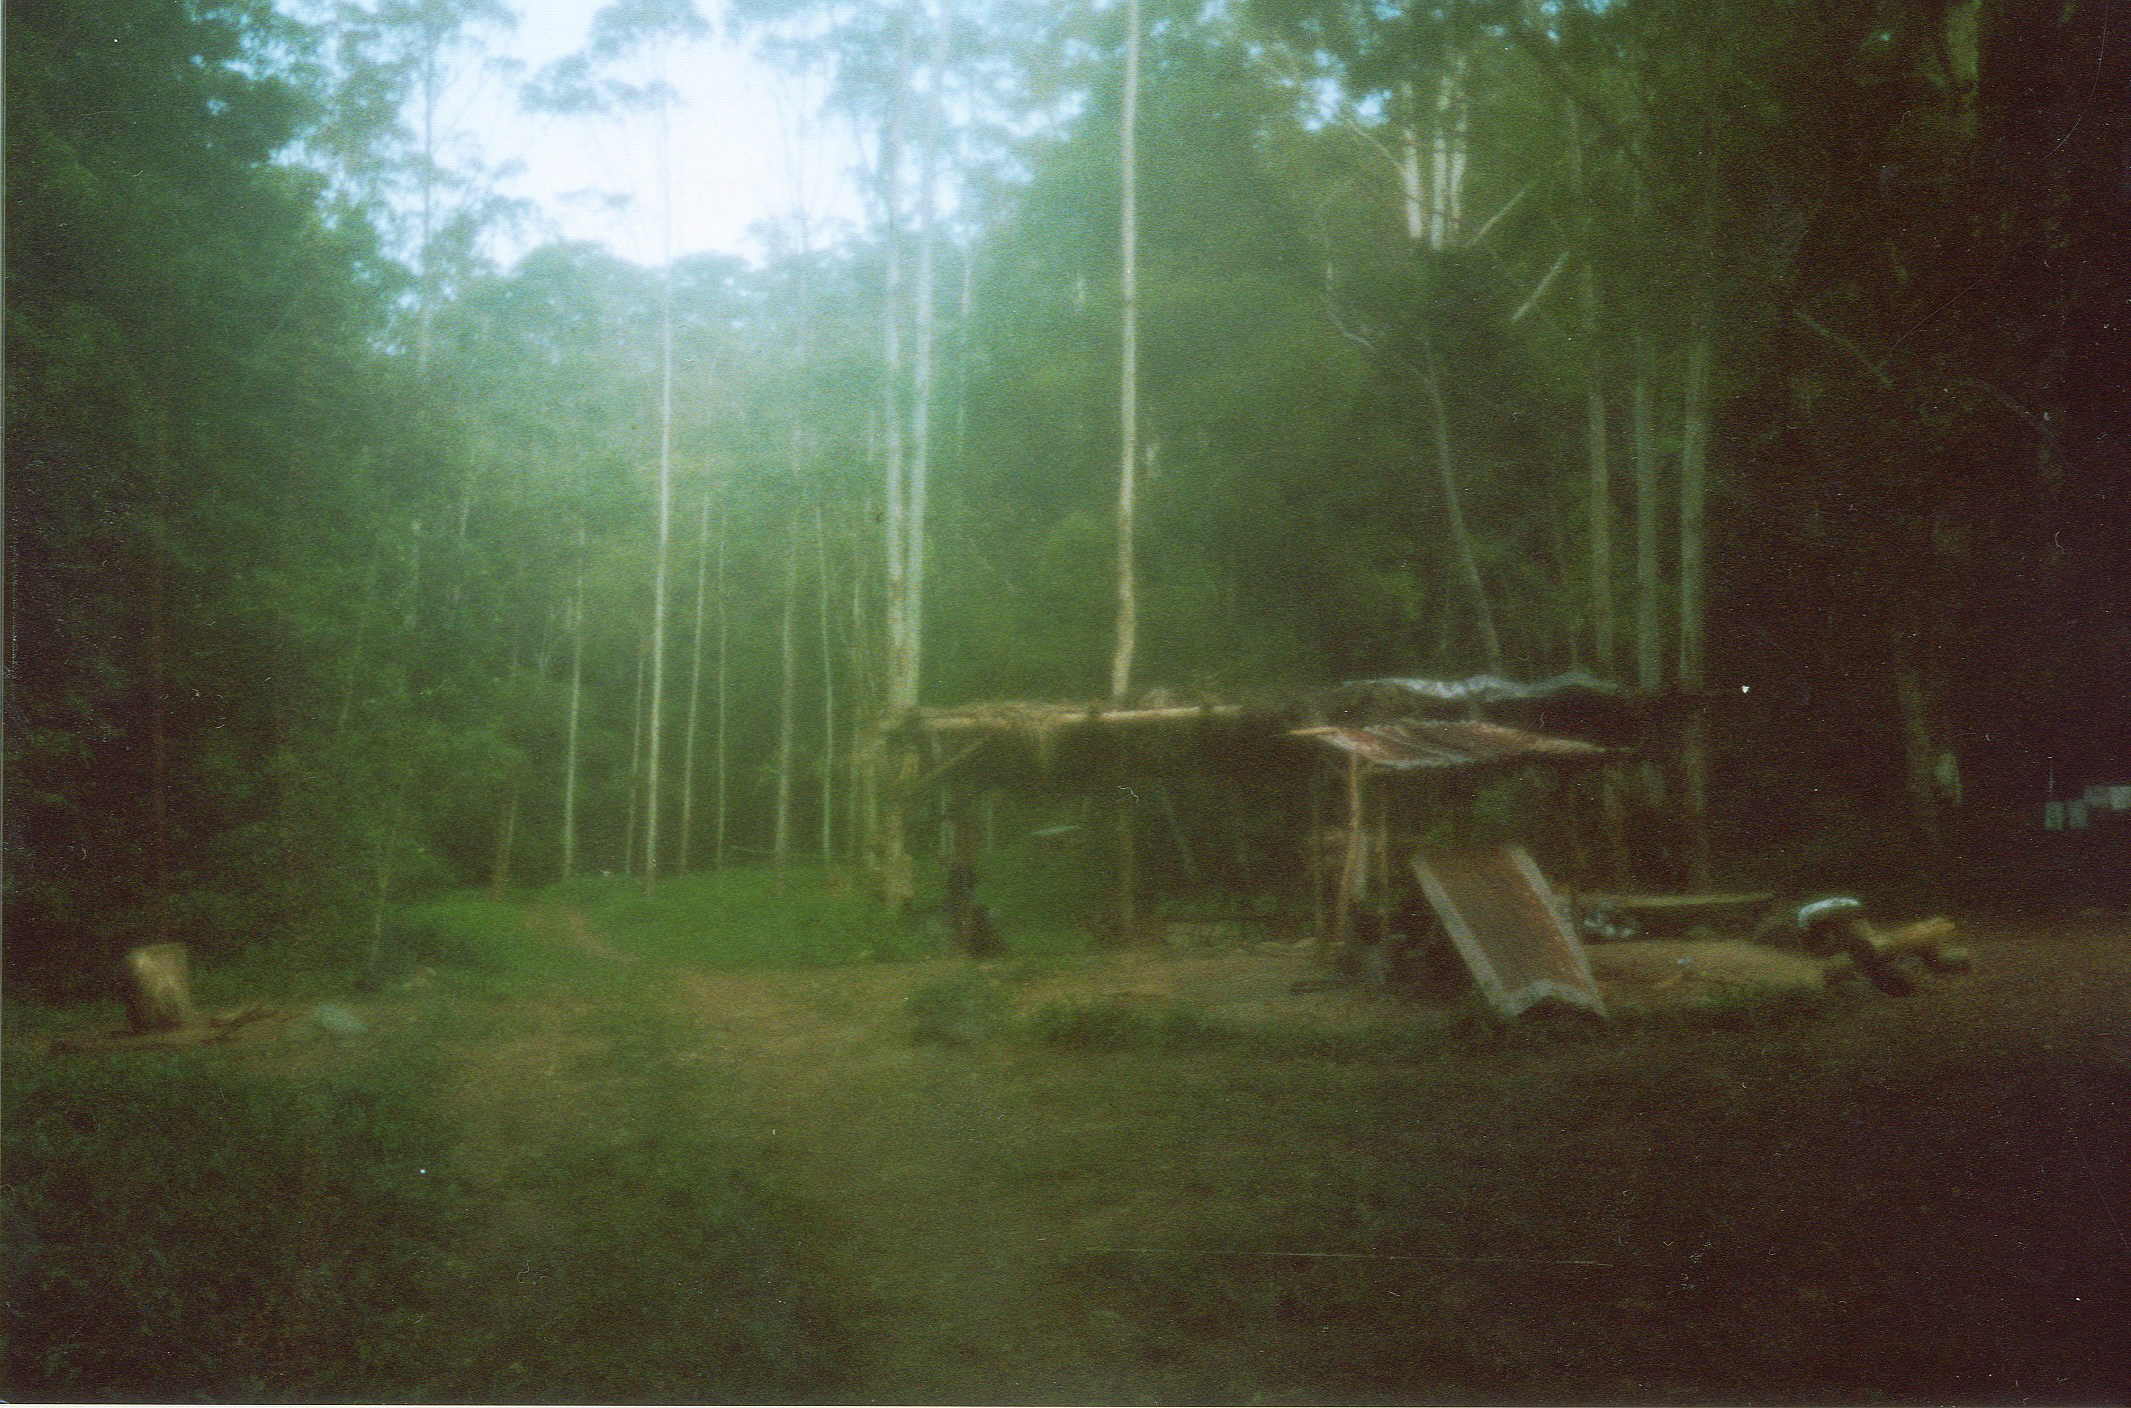 On the last day we each got a disposable camera to capture some memories.  I dropped my camera in the creek by accident, so a lot of my photographs had this hazy mystical feel that suited my memories